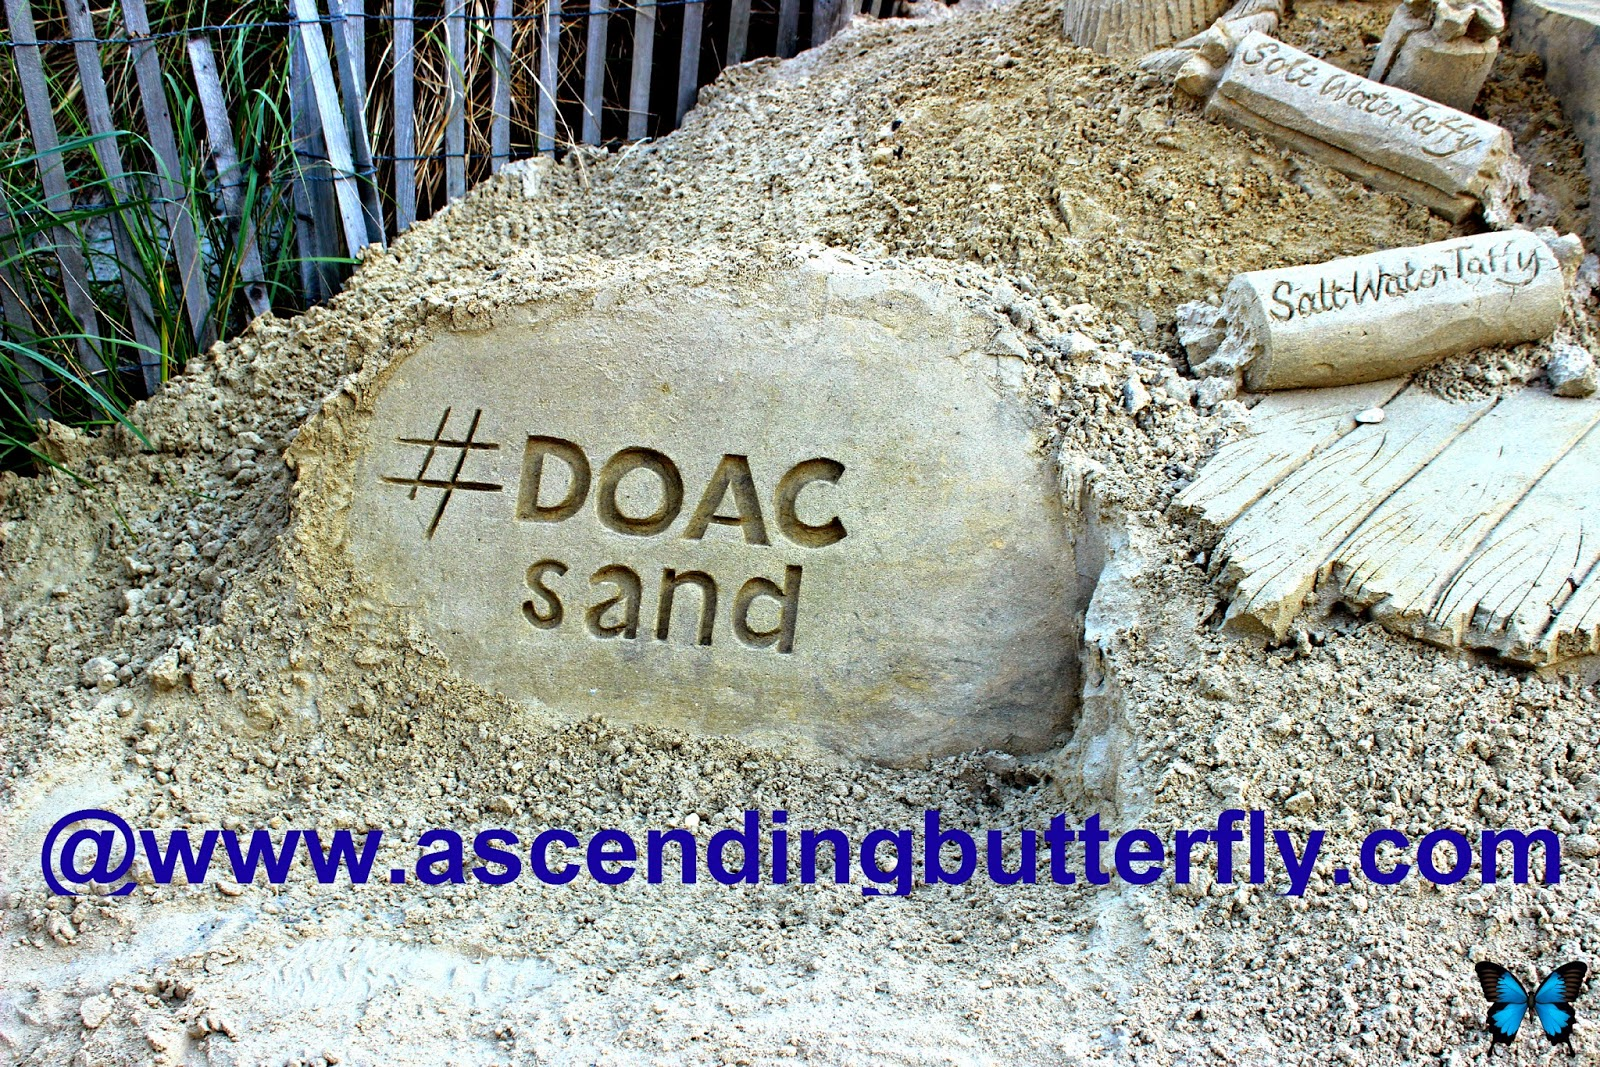 DO AC Sand Sculpting World Cup Atlantic City 2014, #DOACsand